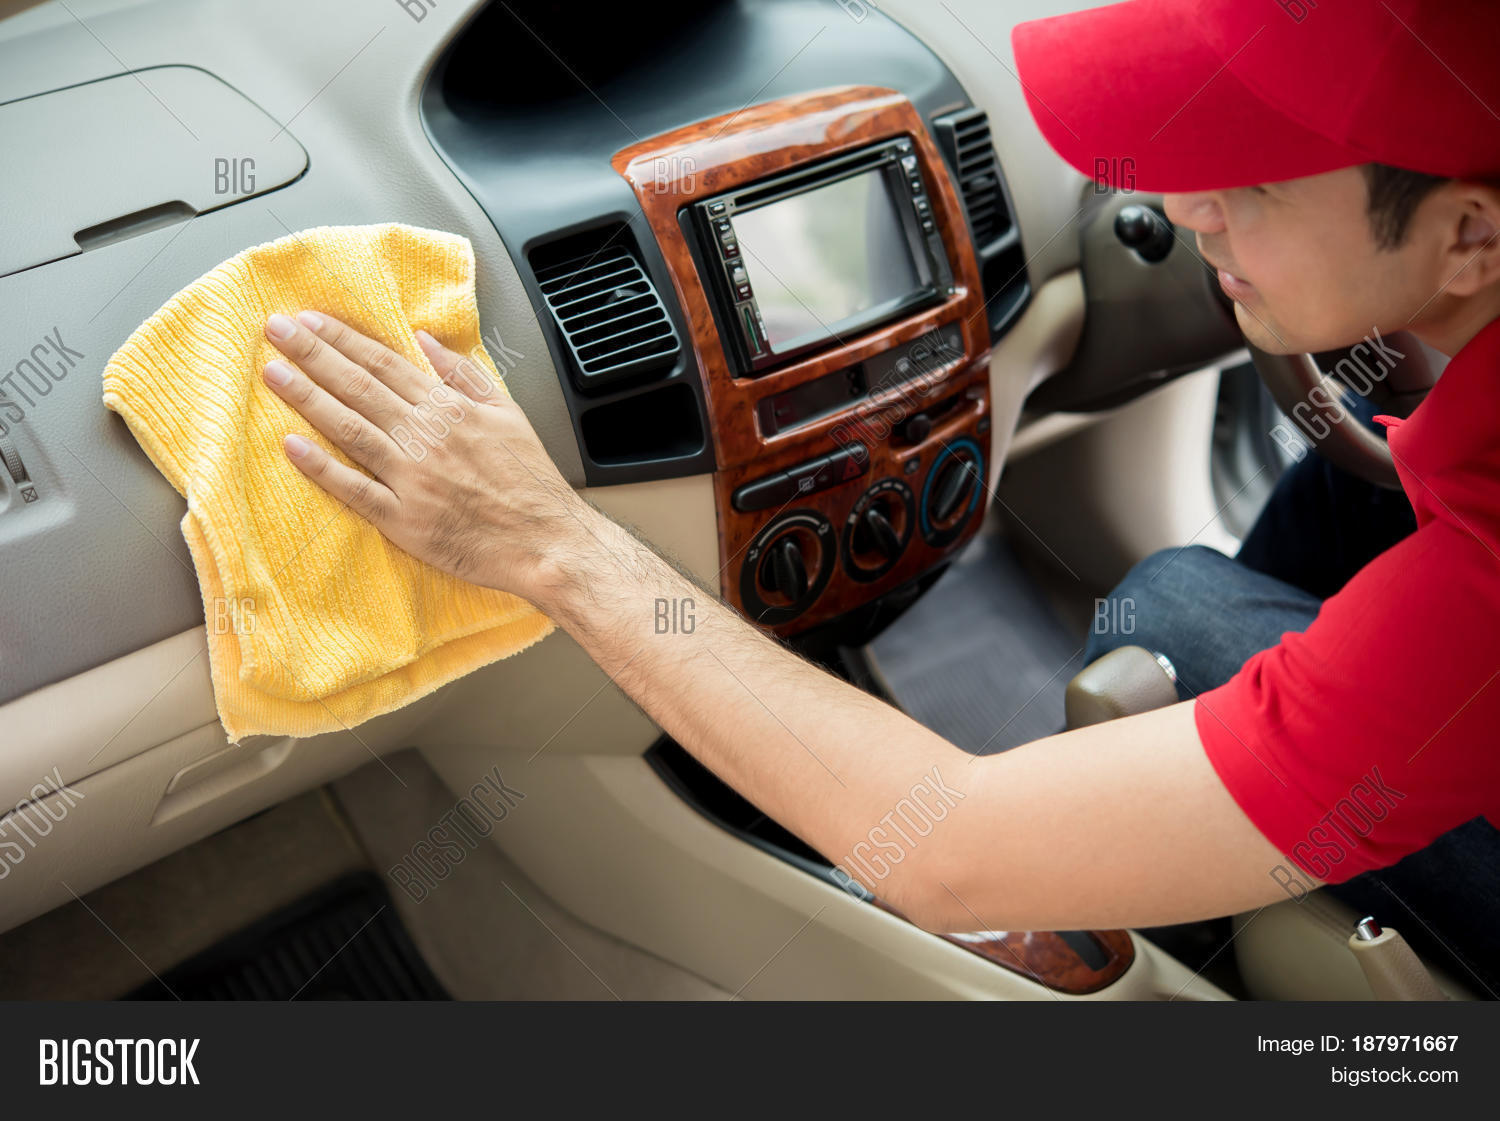 man cleaning car image & photo (free trial) | bigstock